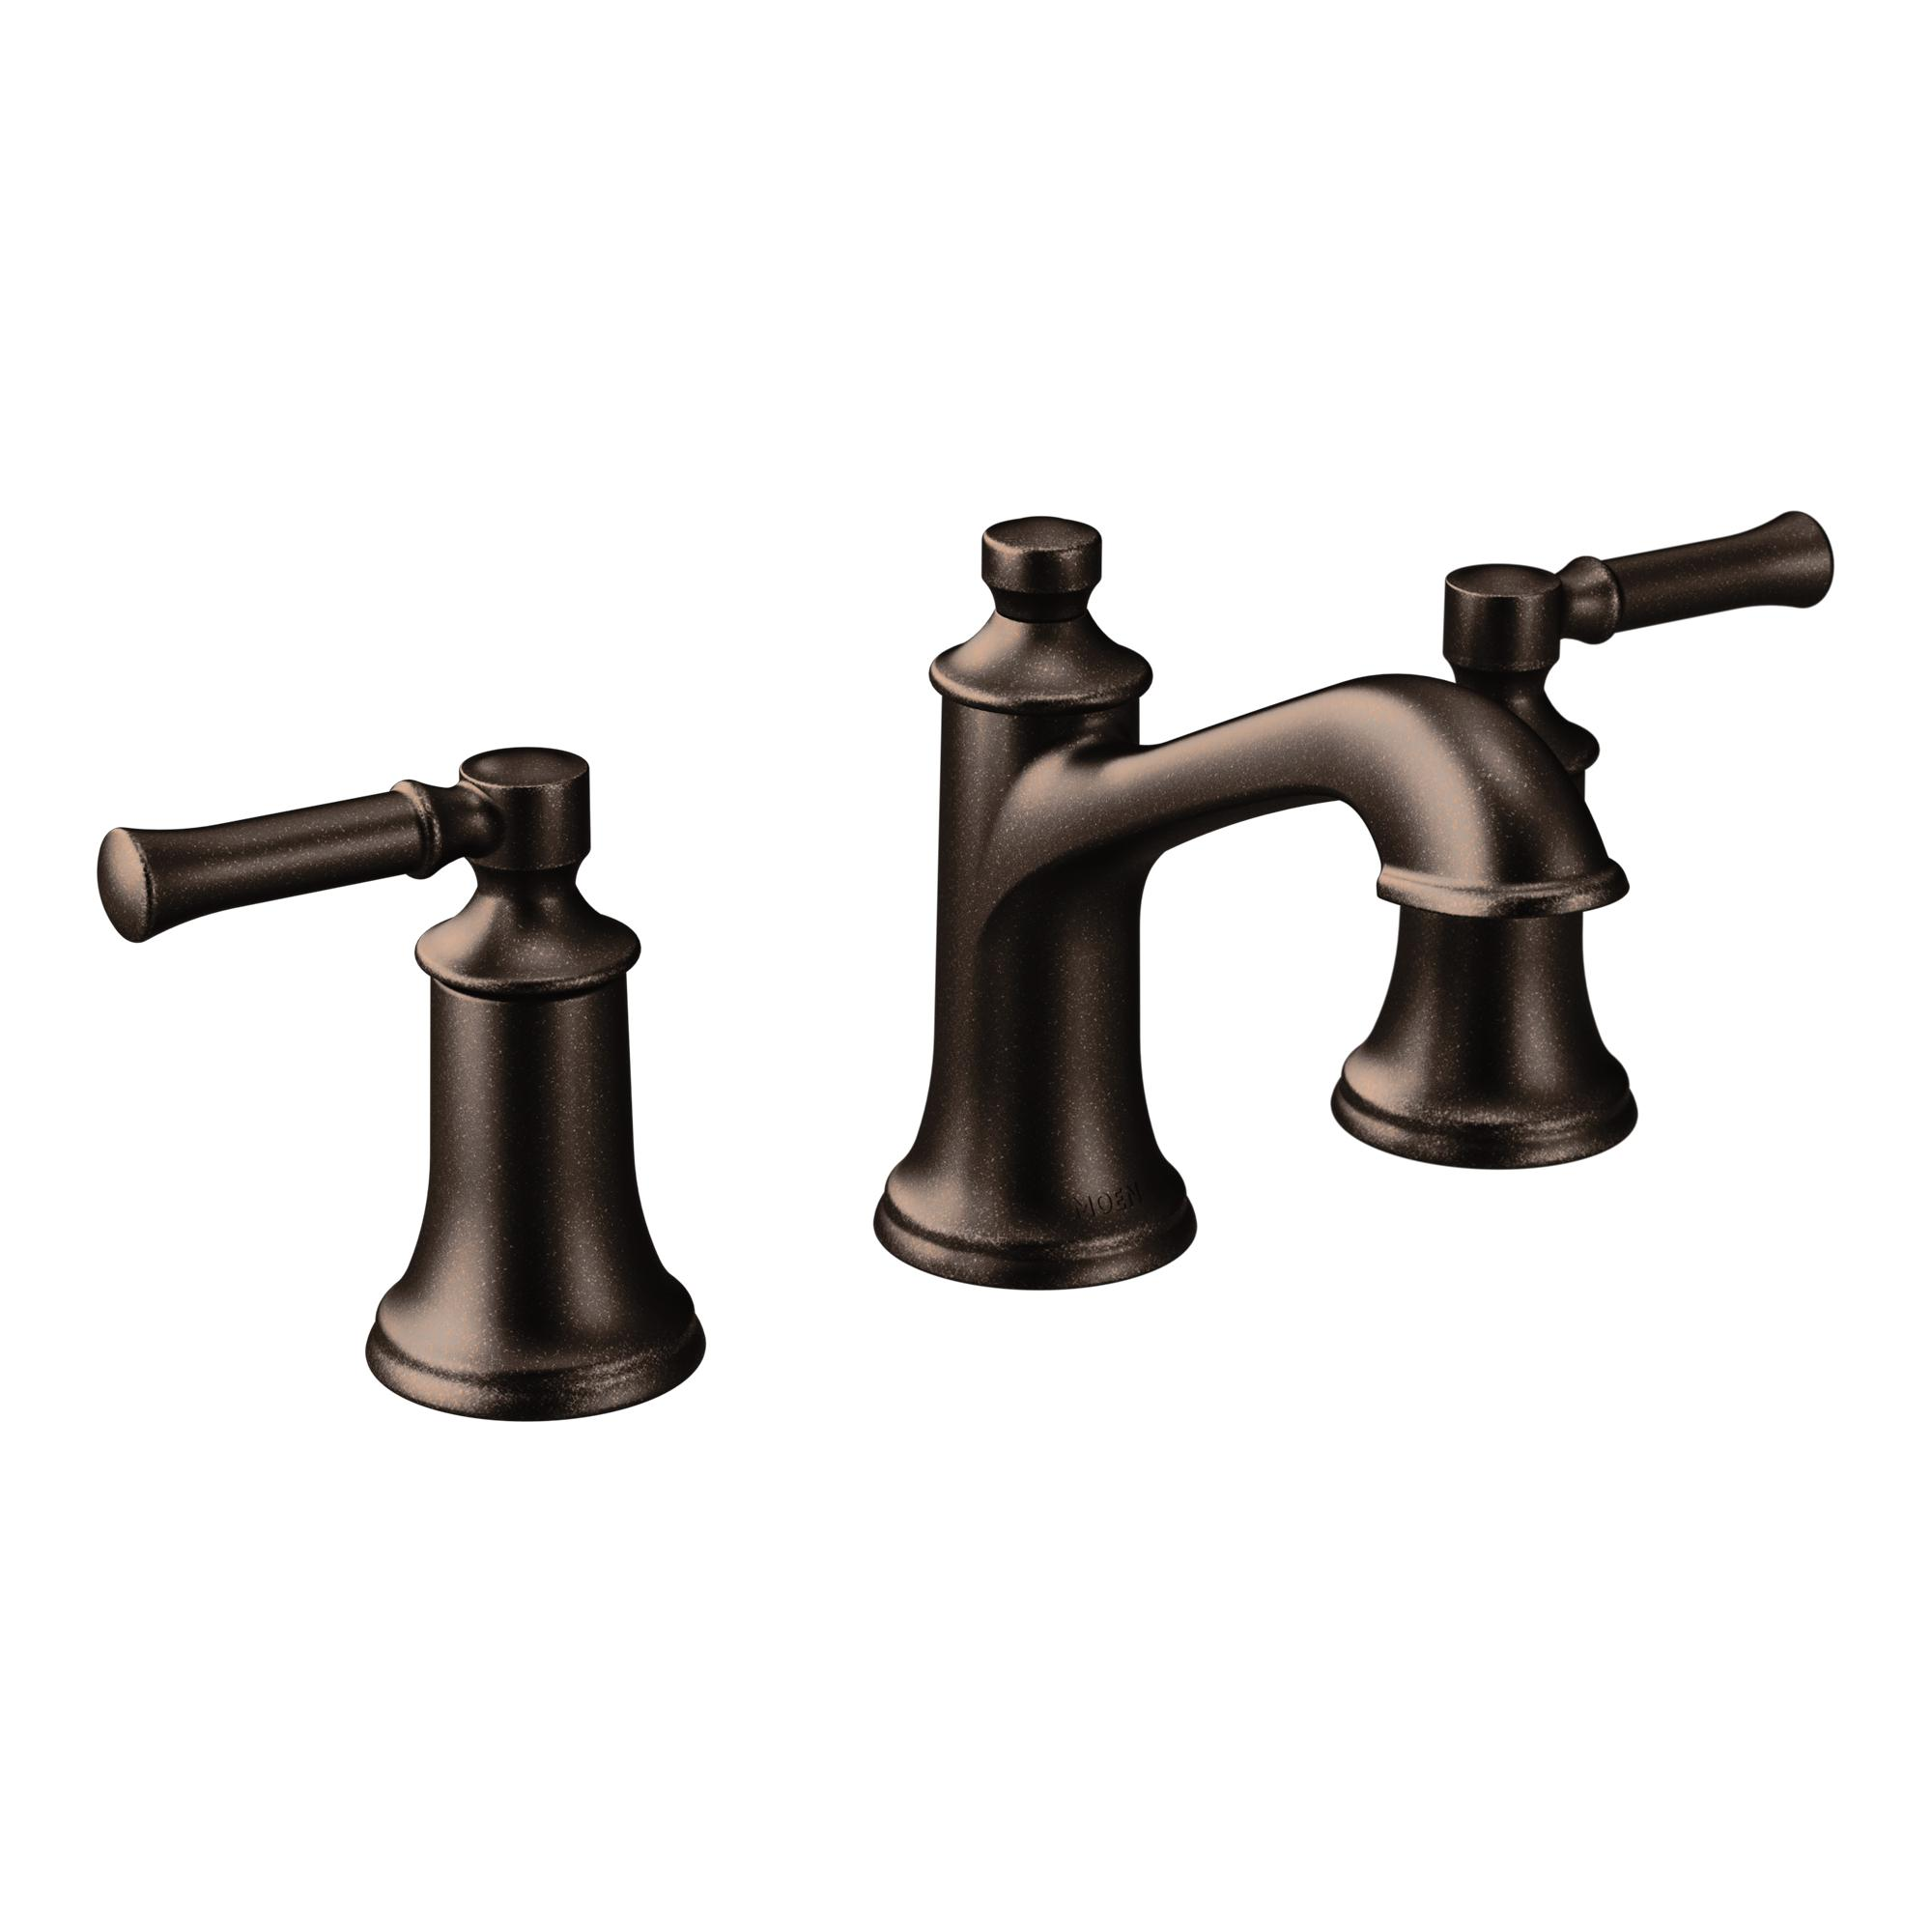 bathroom arcus bronze faucets fus kraususa kraus brushed com basin lever chrome single faucet